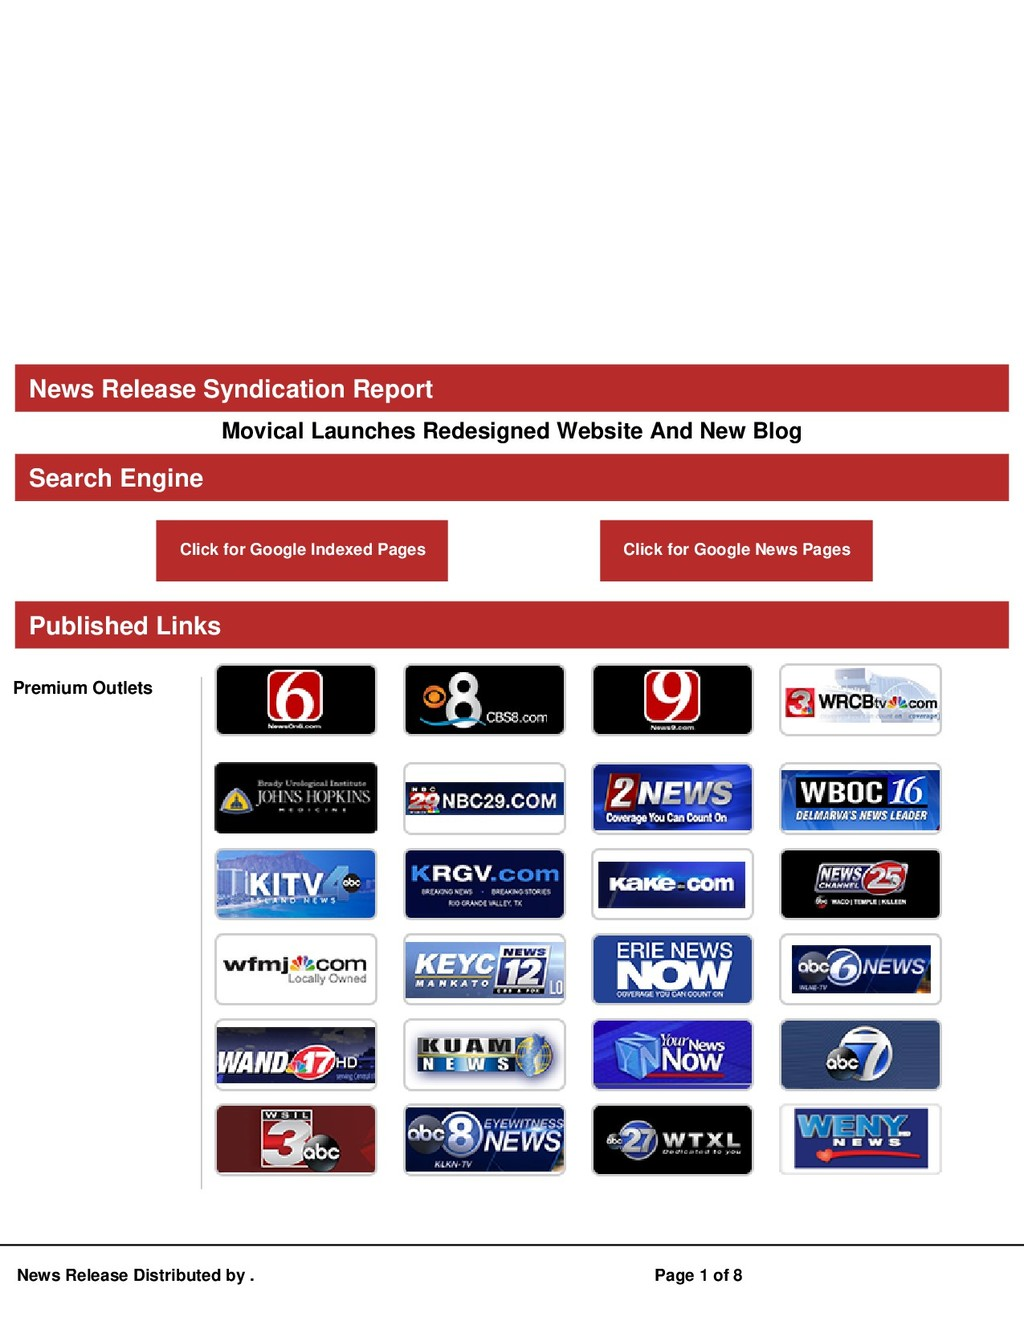 News Release Syndication Report Movical Launche...